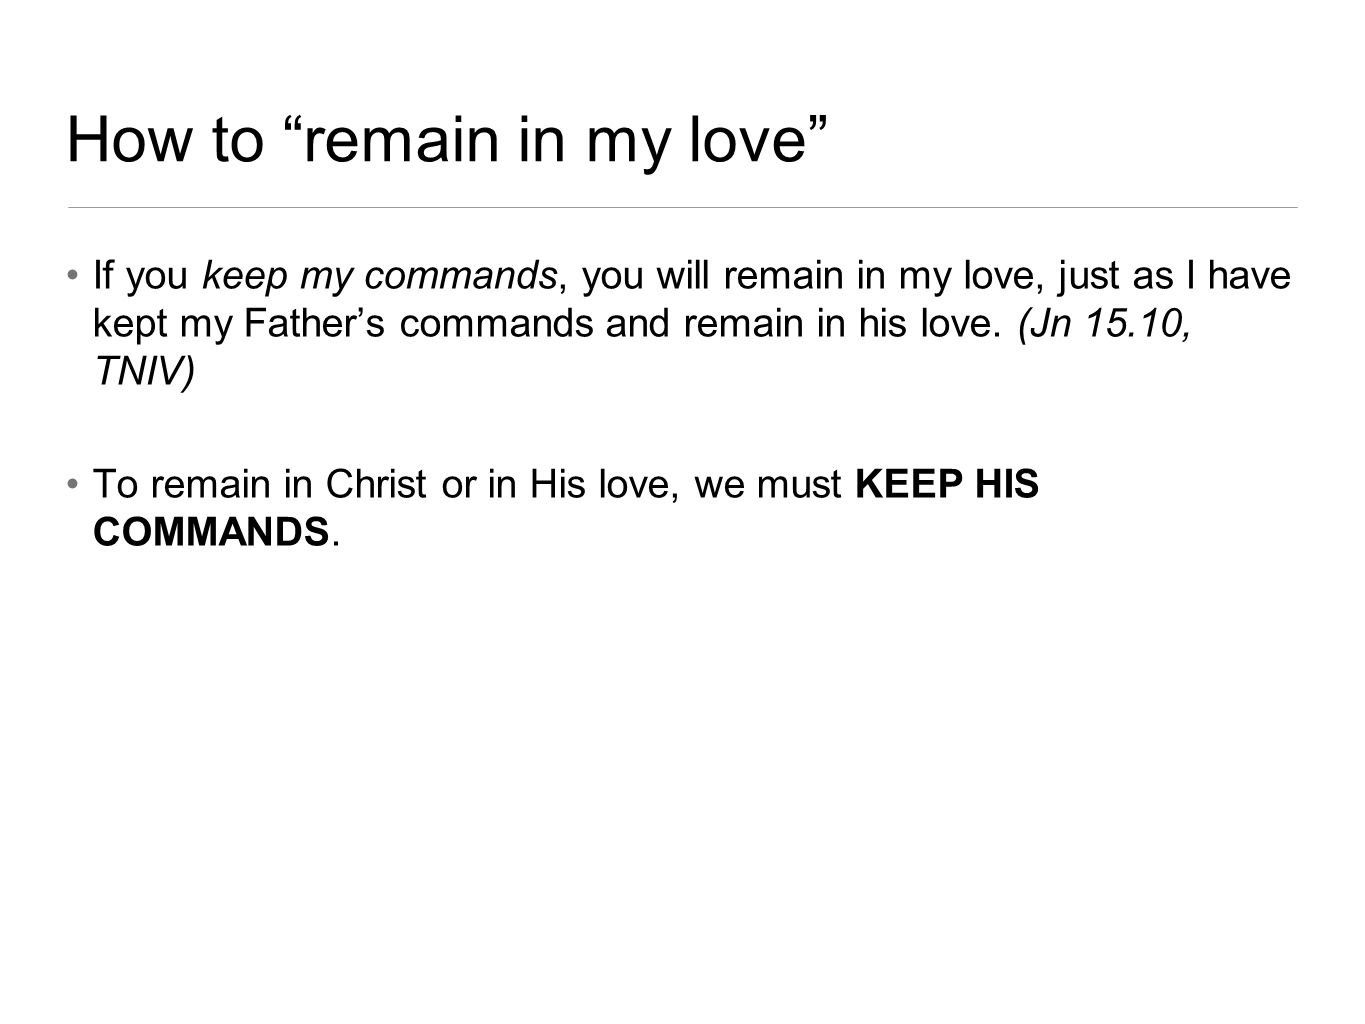 How to remain in my love If you keep my commands, you will remain in my love, just as I have kept my Father's commands and remain in his love.